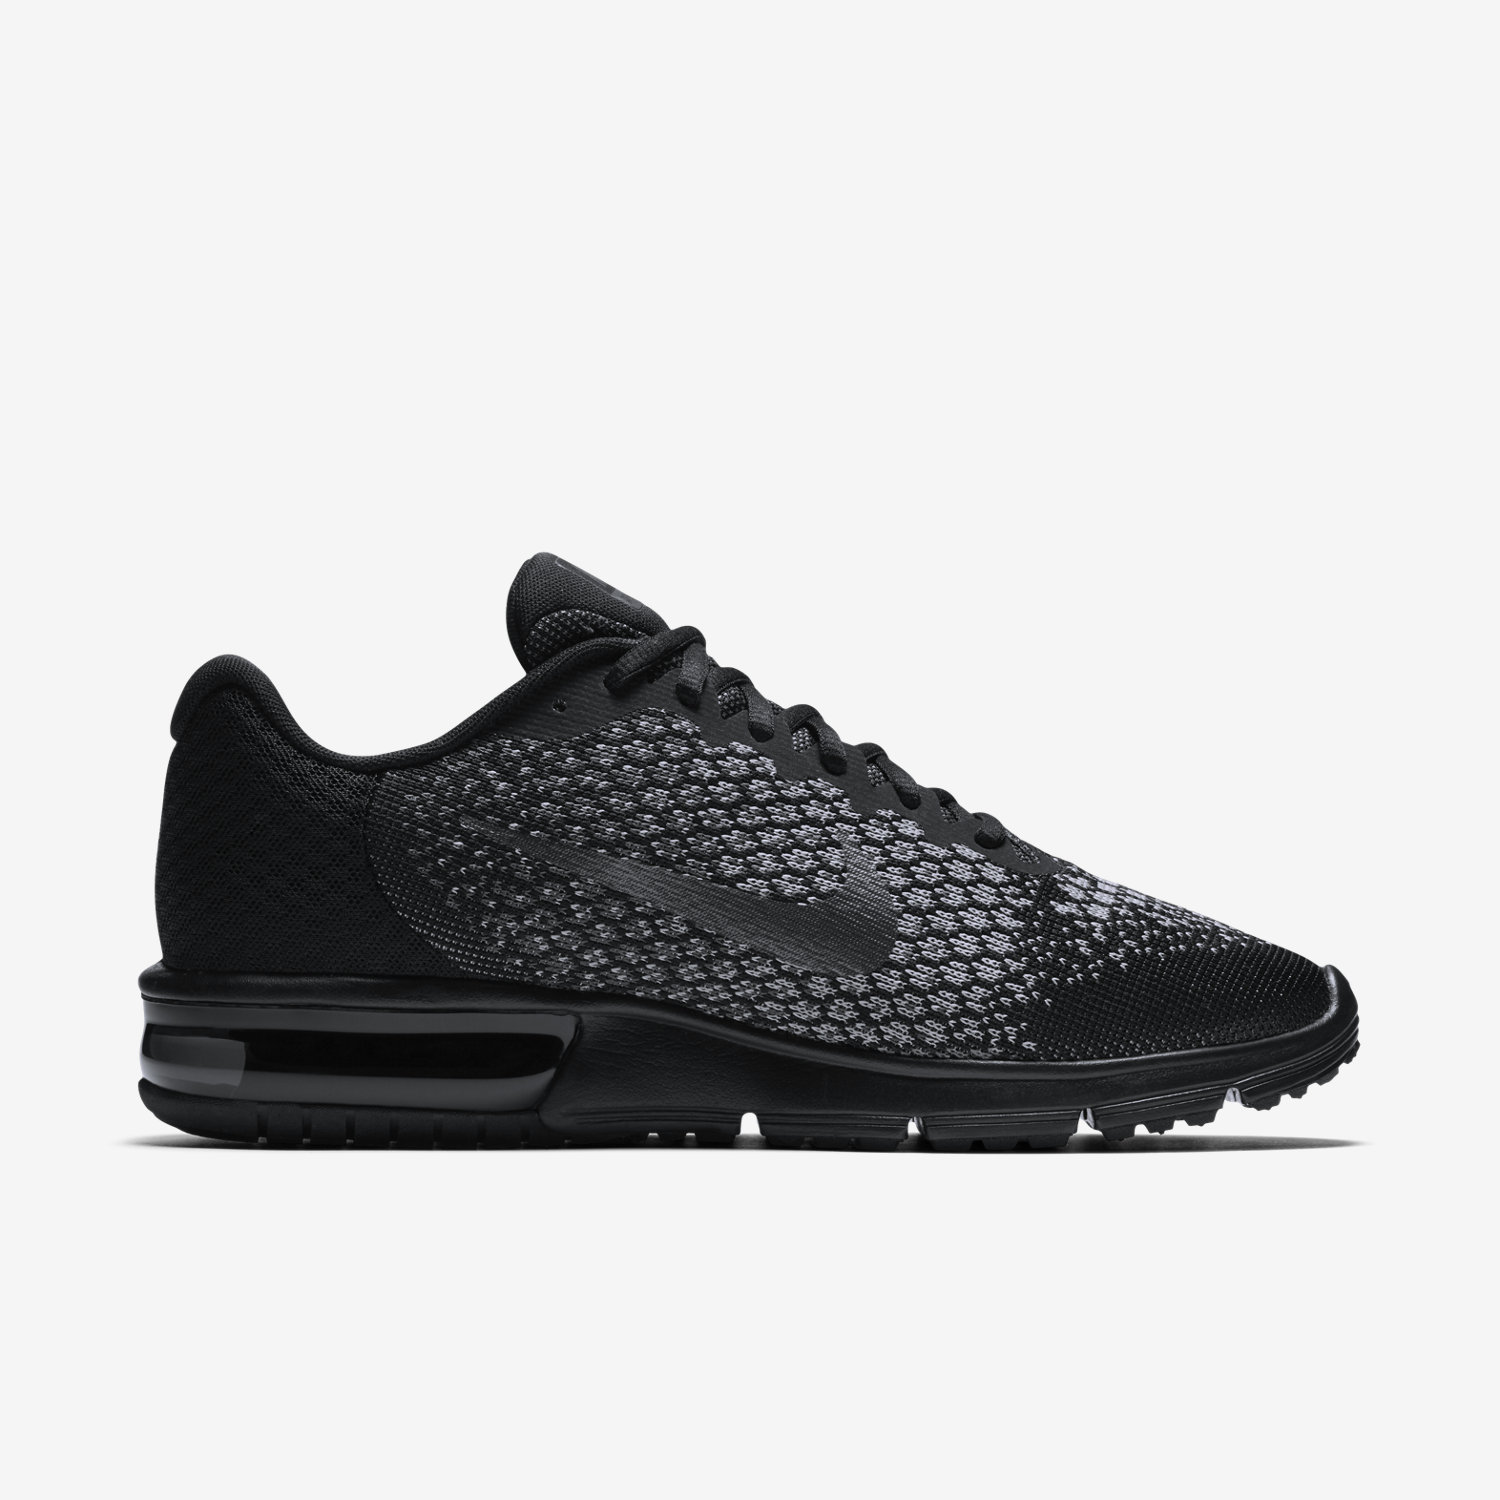 Nike Air Max Sequent 2 Running Shoes NWT